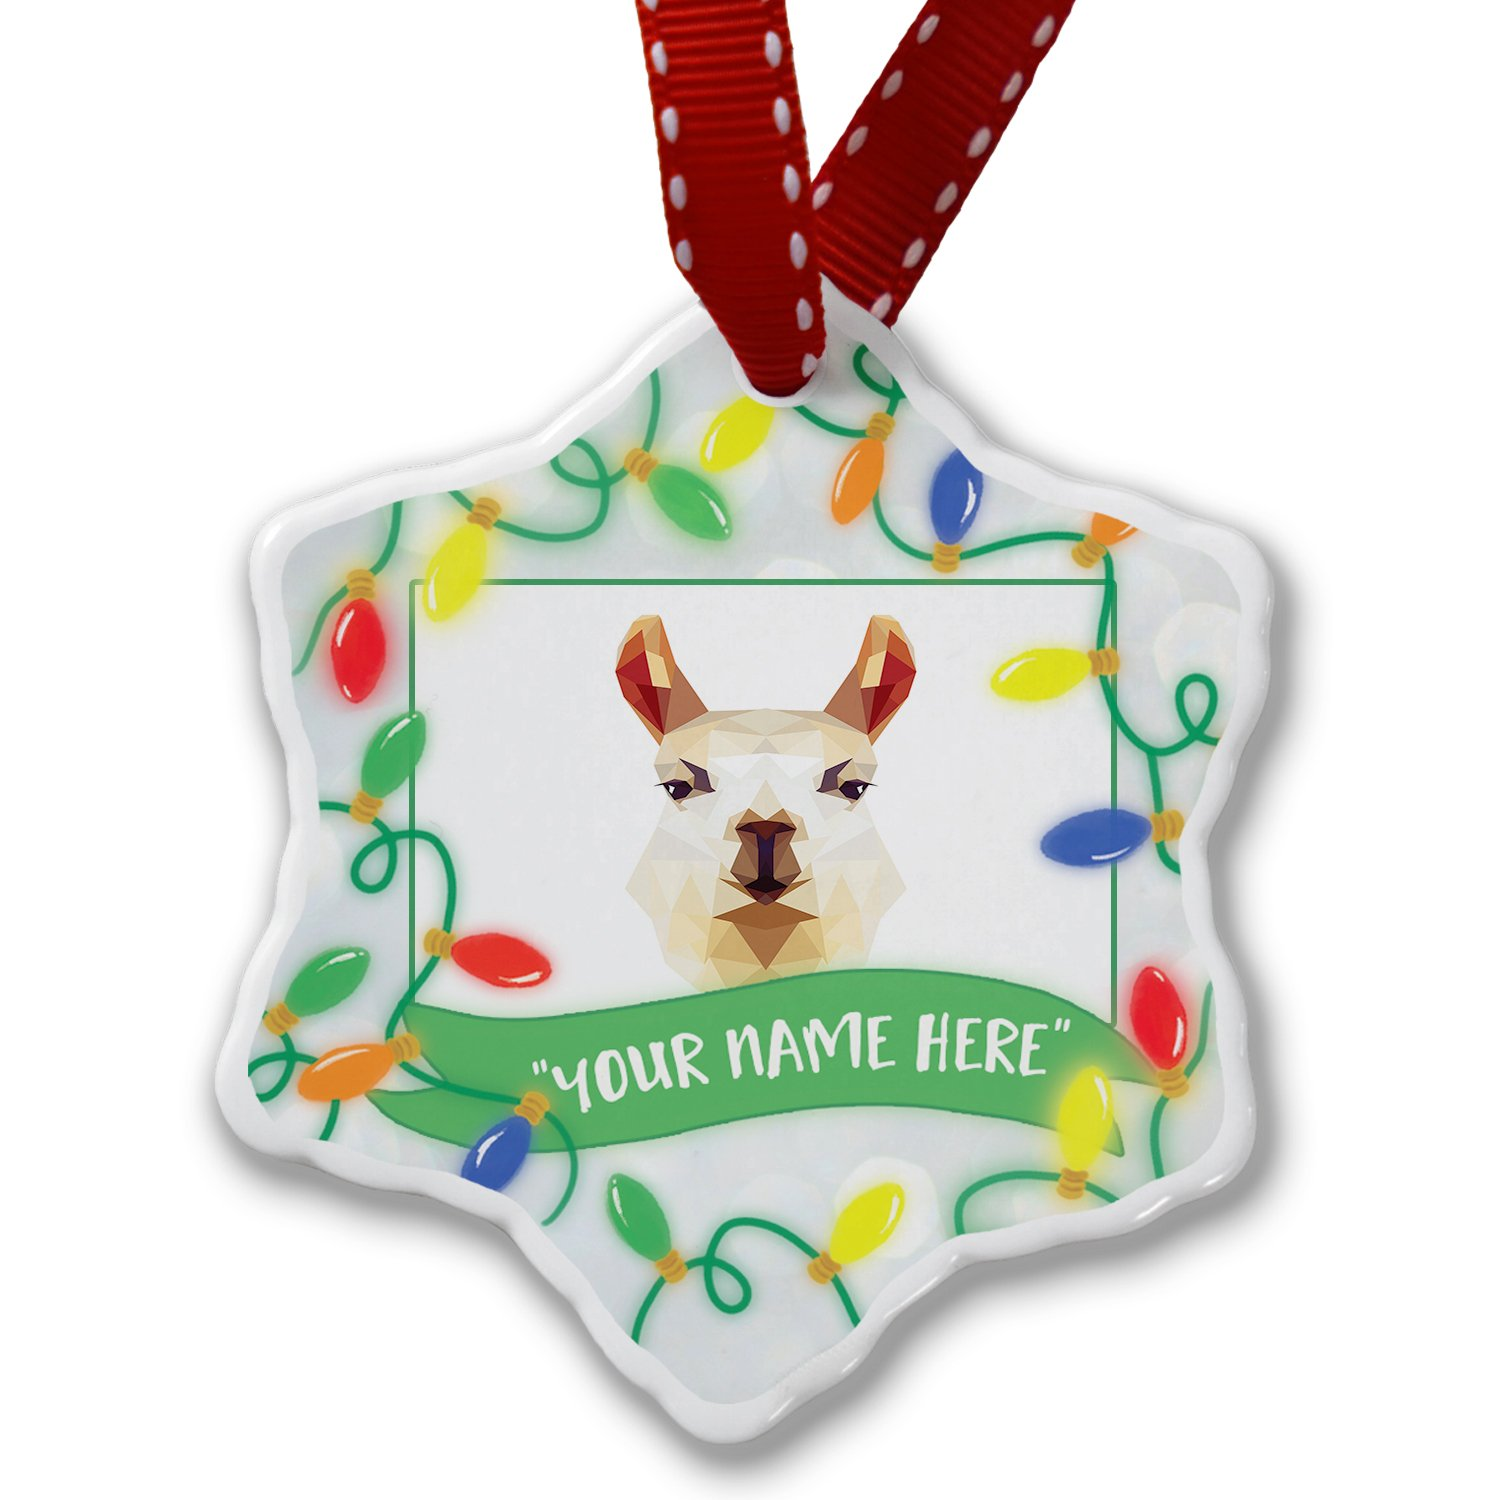 Personalized Name Christmas Ornament, Geometric Animal art Llama NEONBLOND by NEONBLOND (Image #1)